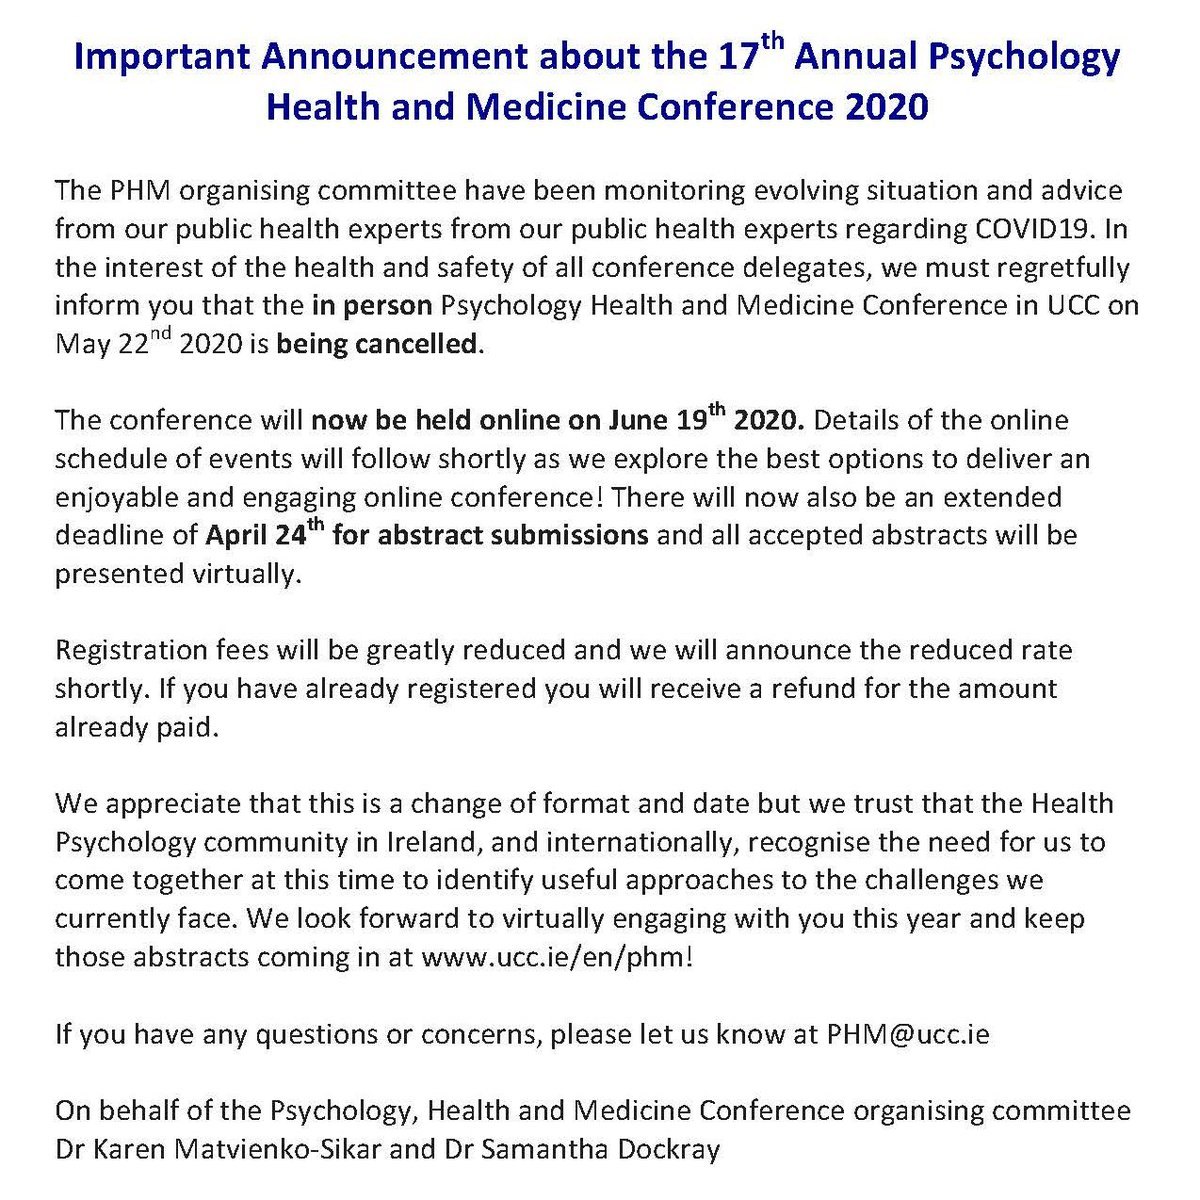 test Twitter Media - Due to the current health advice about COVID19, #phm2020 will not take place in person this year but will instead take place online on June 19th 2020. Abstract submission extended to April 24th https://t.co/PrFmMW9sgo More details to follow soon. #phm2020 @PSI_DHP https://t.co/ZWzMuntkPC